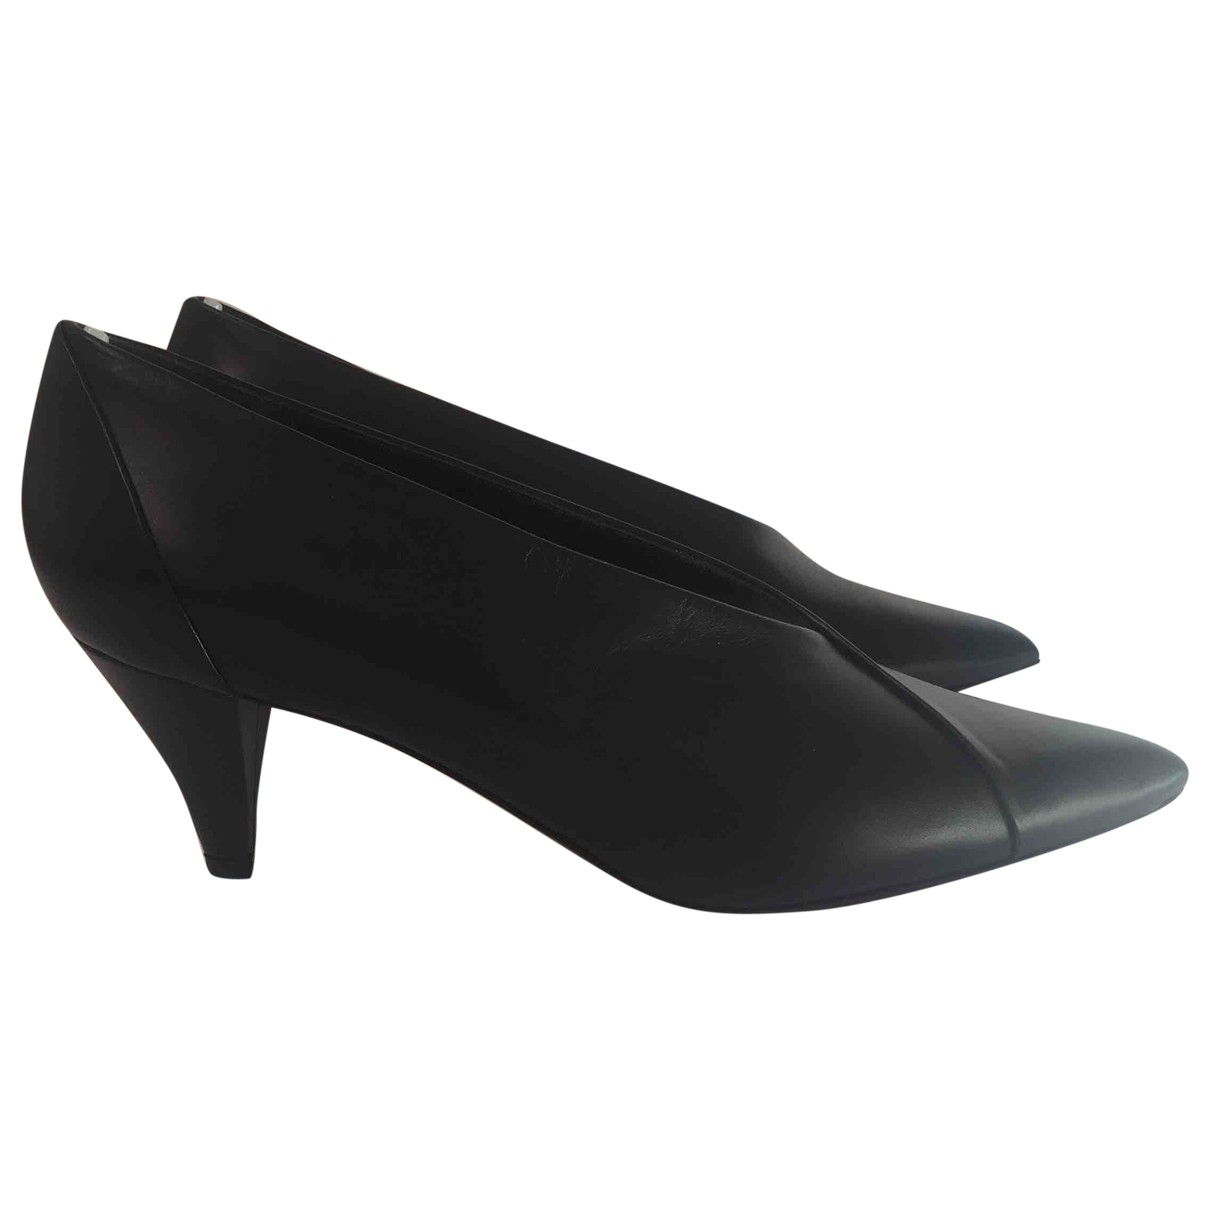 Givenchy \N Black Leather Heels for Women 37.5 EU